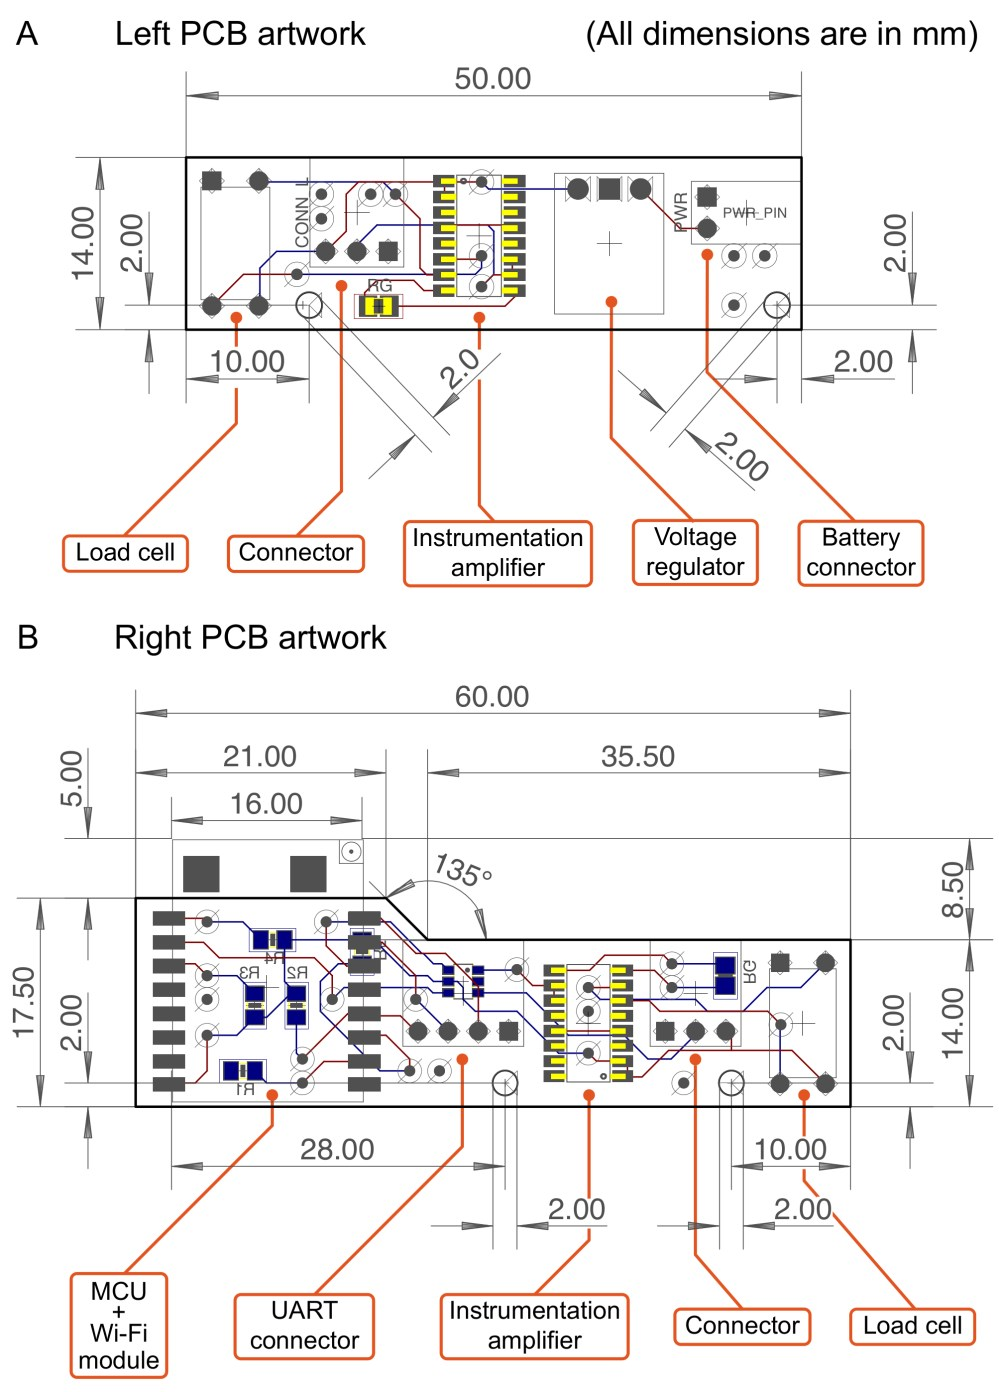 medium resolution of all electronic components are displayed as actual measurements in mm b an artwork of the right pcb